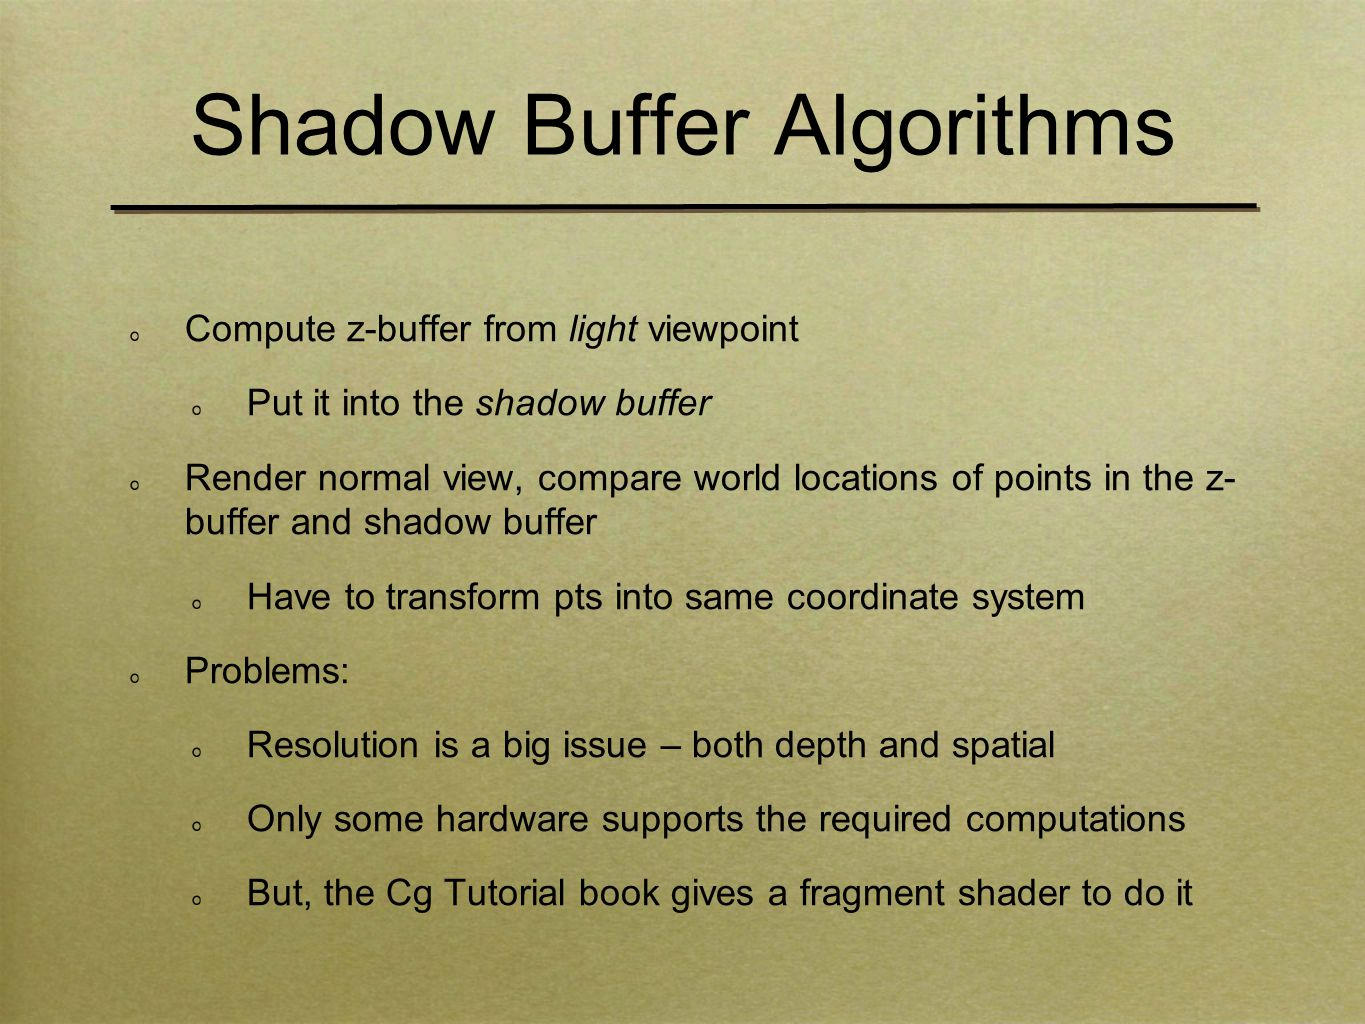 Shadow Buffer Algorithms Compute z-buffer from light viewpoint Put it into the shadow buffer Render normal view, compare world locations of points in the z- buffer and shadow buffer Have to transform pts into same coordinate system Problems: Resolution is a big issue – both depth and spatial Only some hardware supports the required computations But, the Cg Tutorial book gives a fragment shader to do it